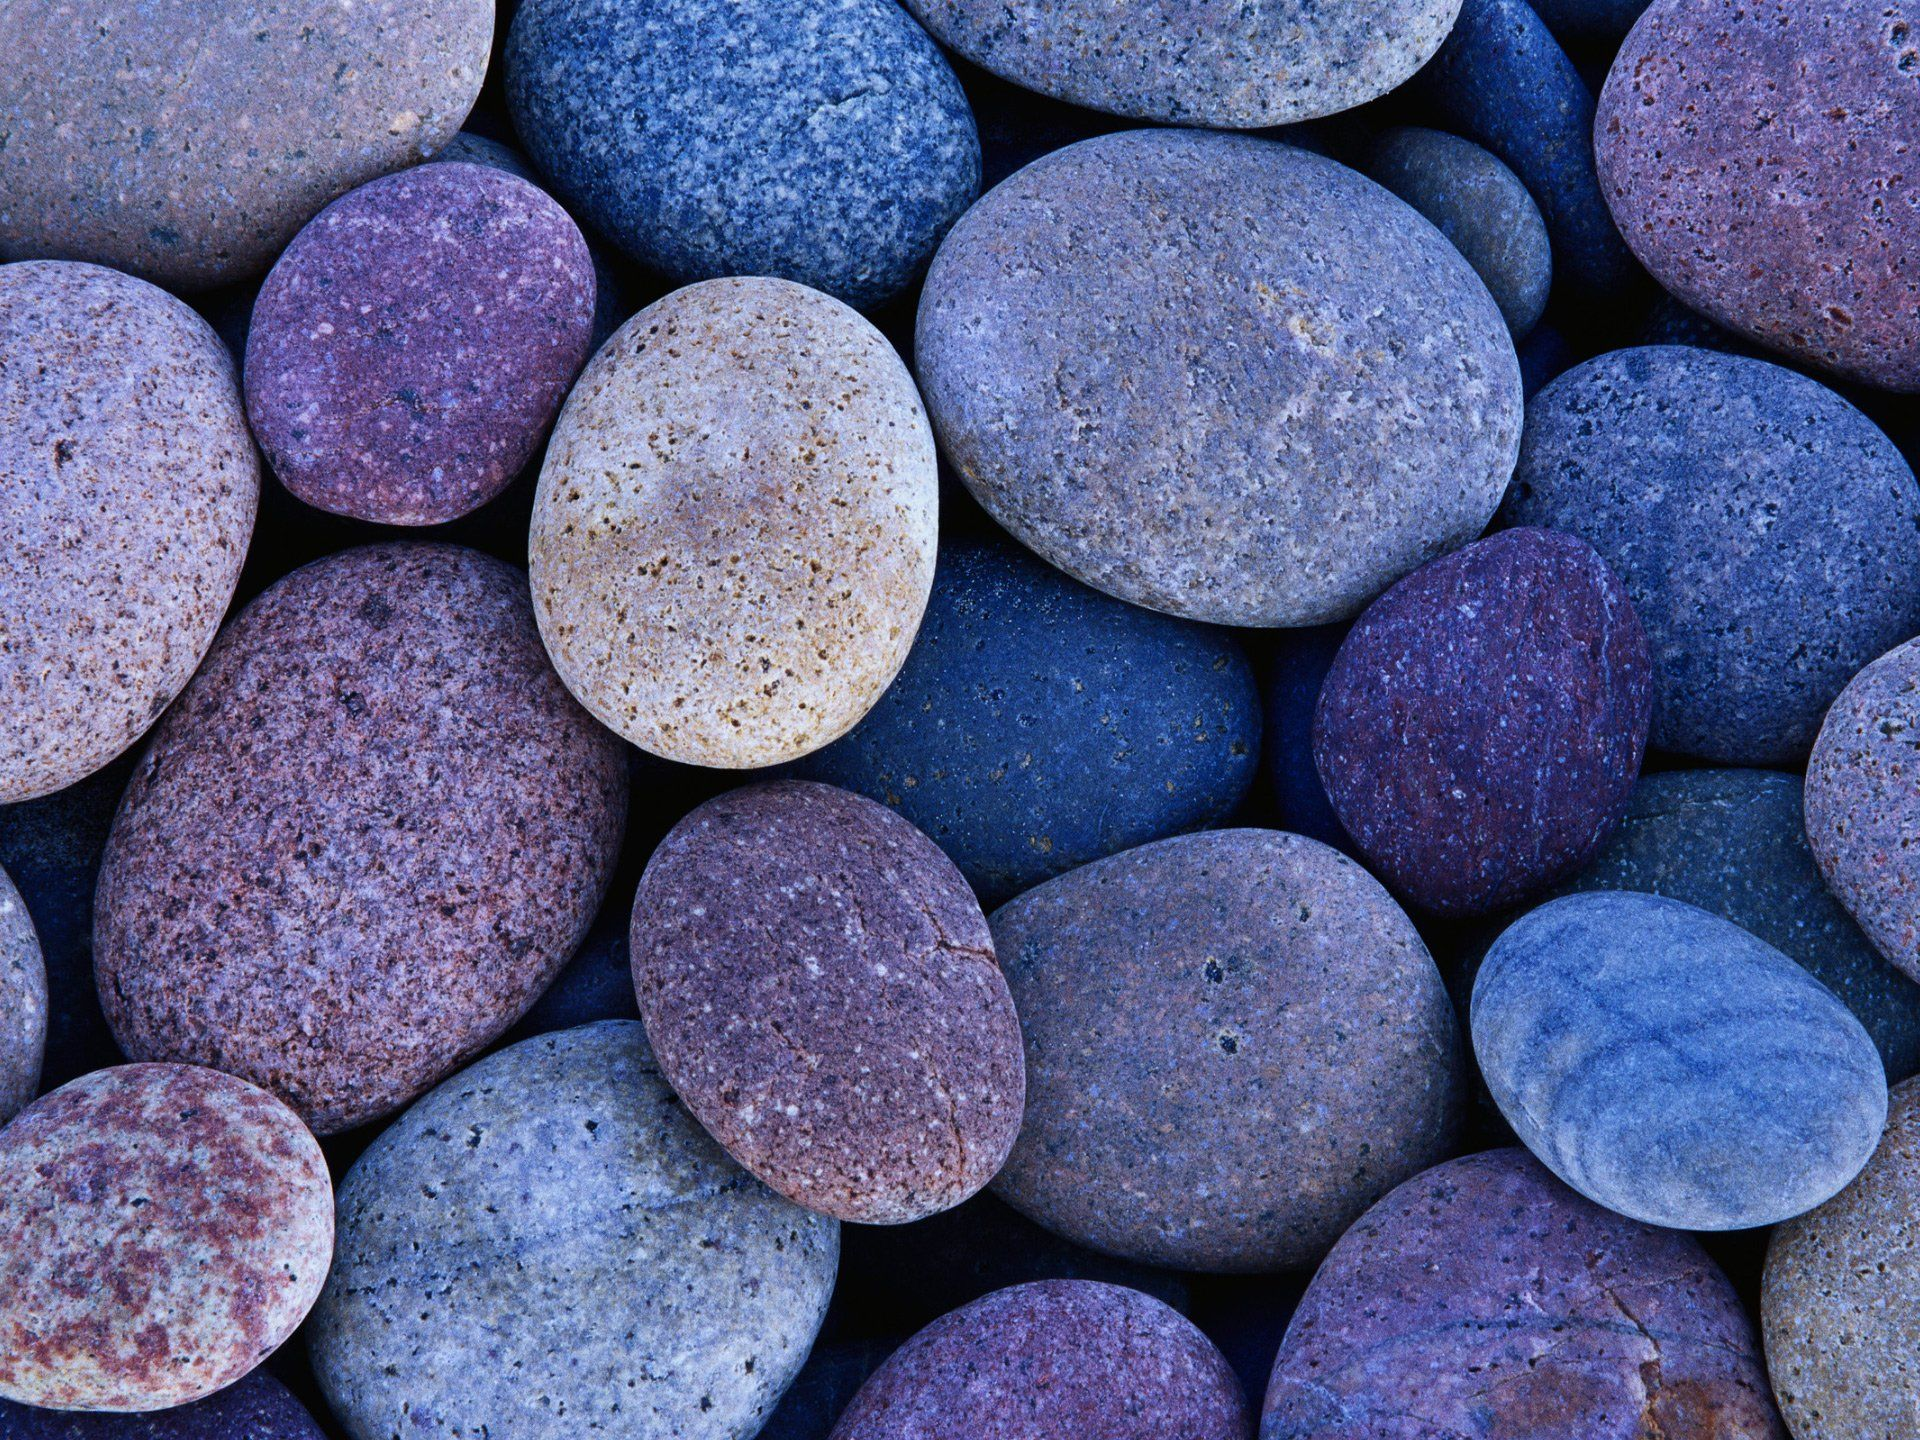 Blue And Purple Stone Rocks Hd Desktop Wallpaper More Wallpaper